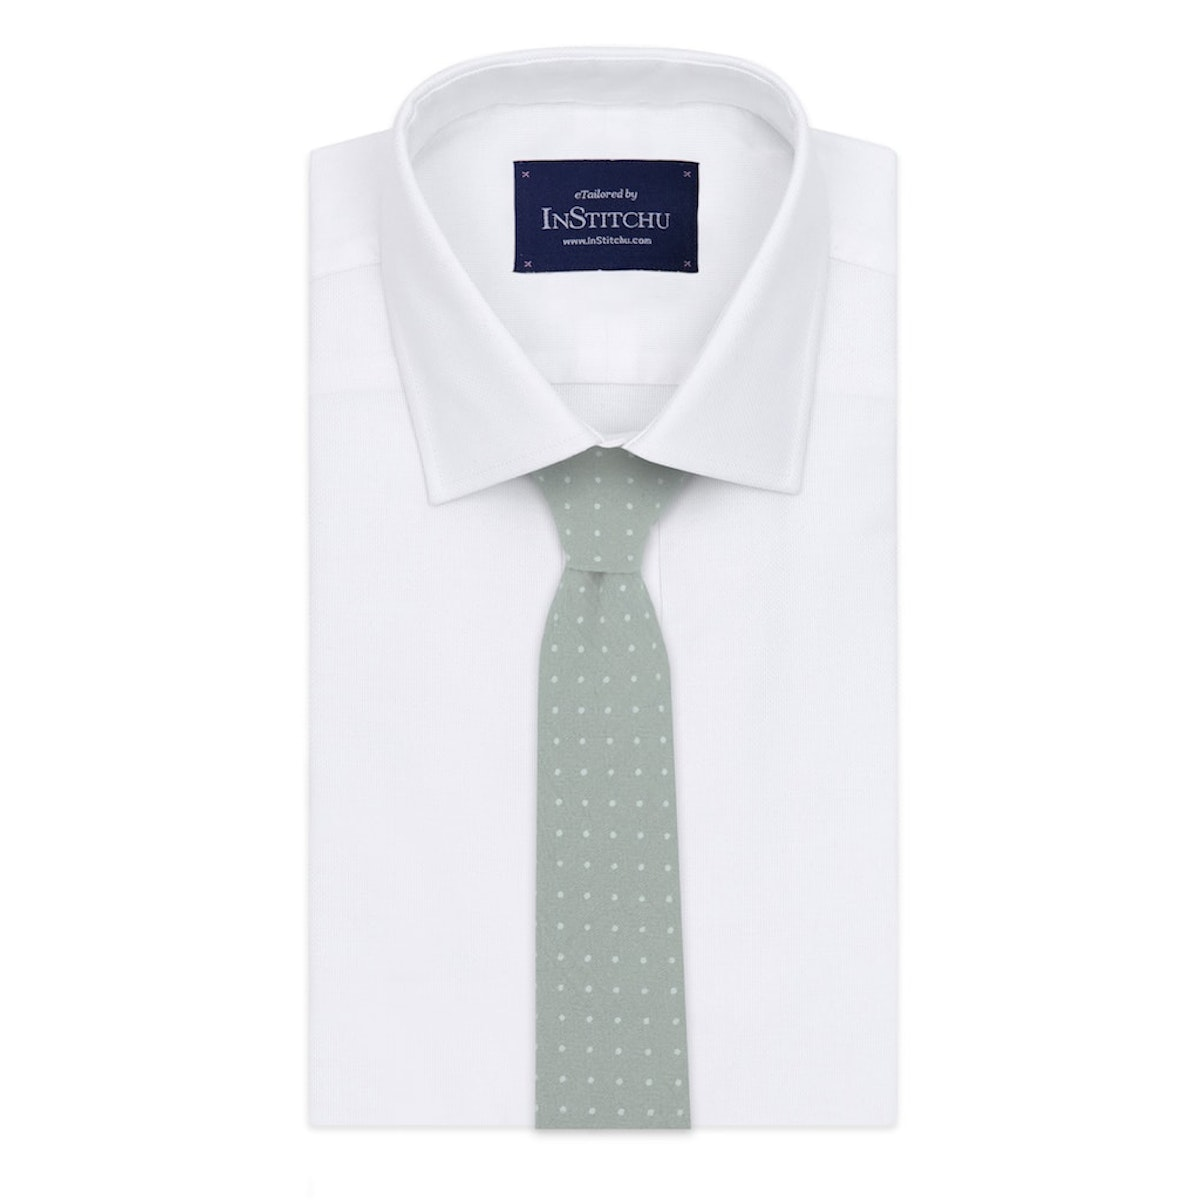 InStitchu Essentials Accessories Tie Maroubra Eucalypt-Grey Pastel Spotted Cotton Tie